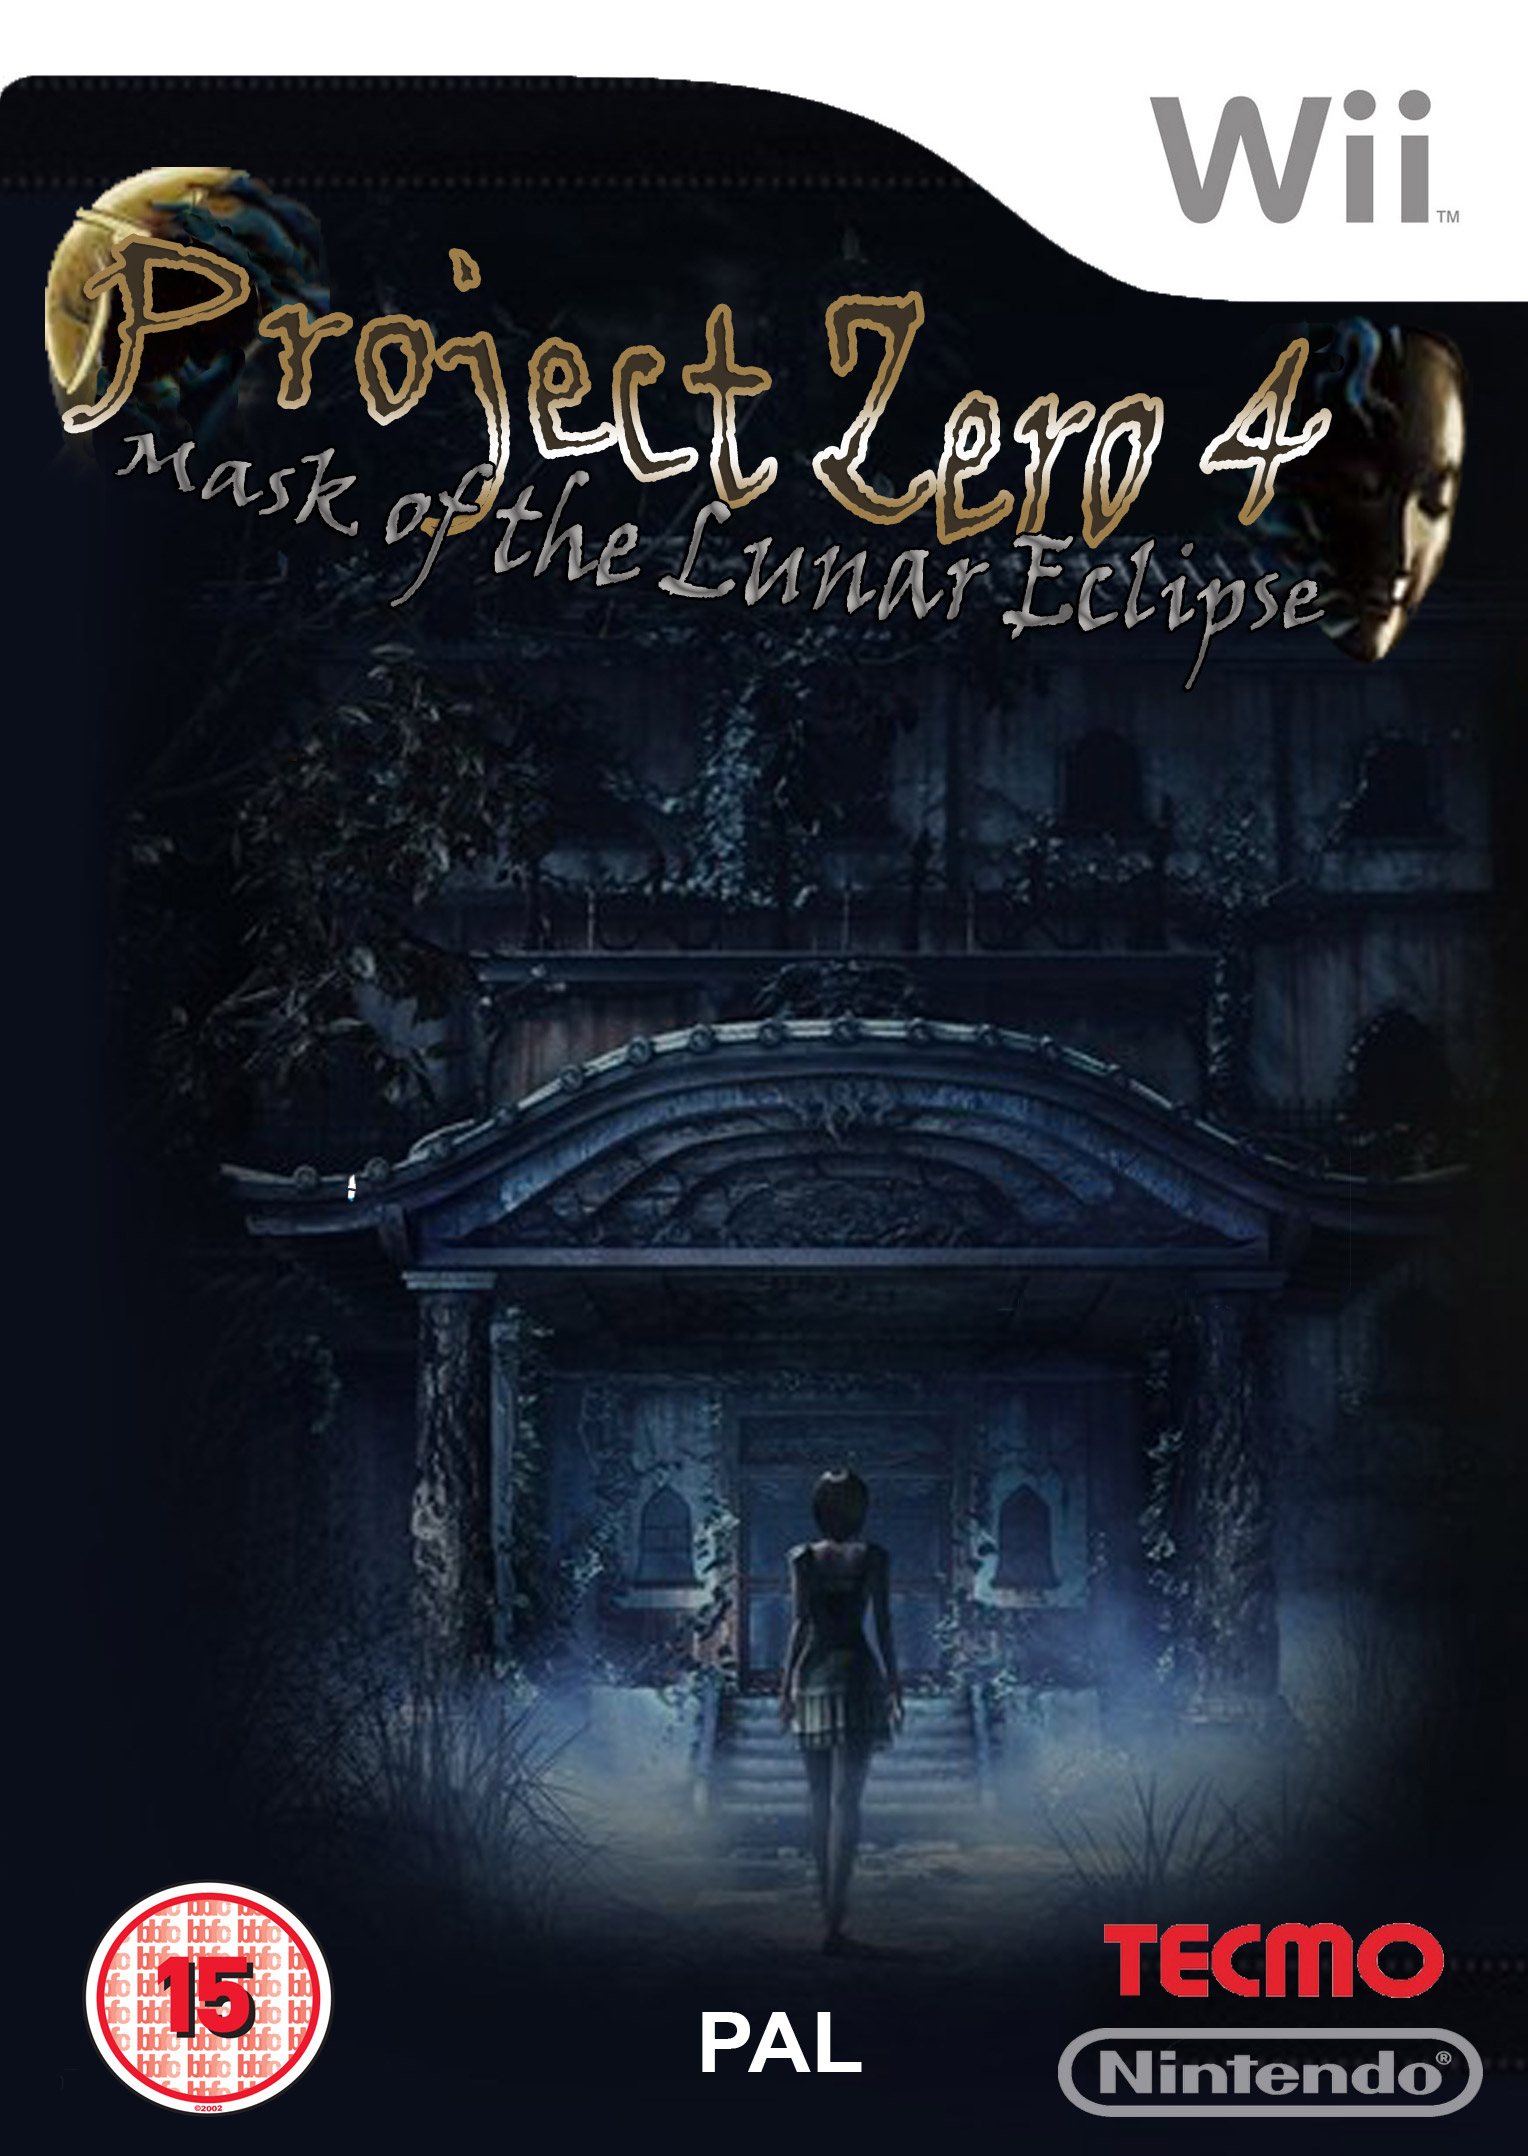 Project Zero IV: Mask of the Lunar Eclipse Wii comprar: Ultimagame